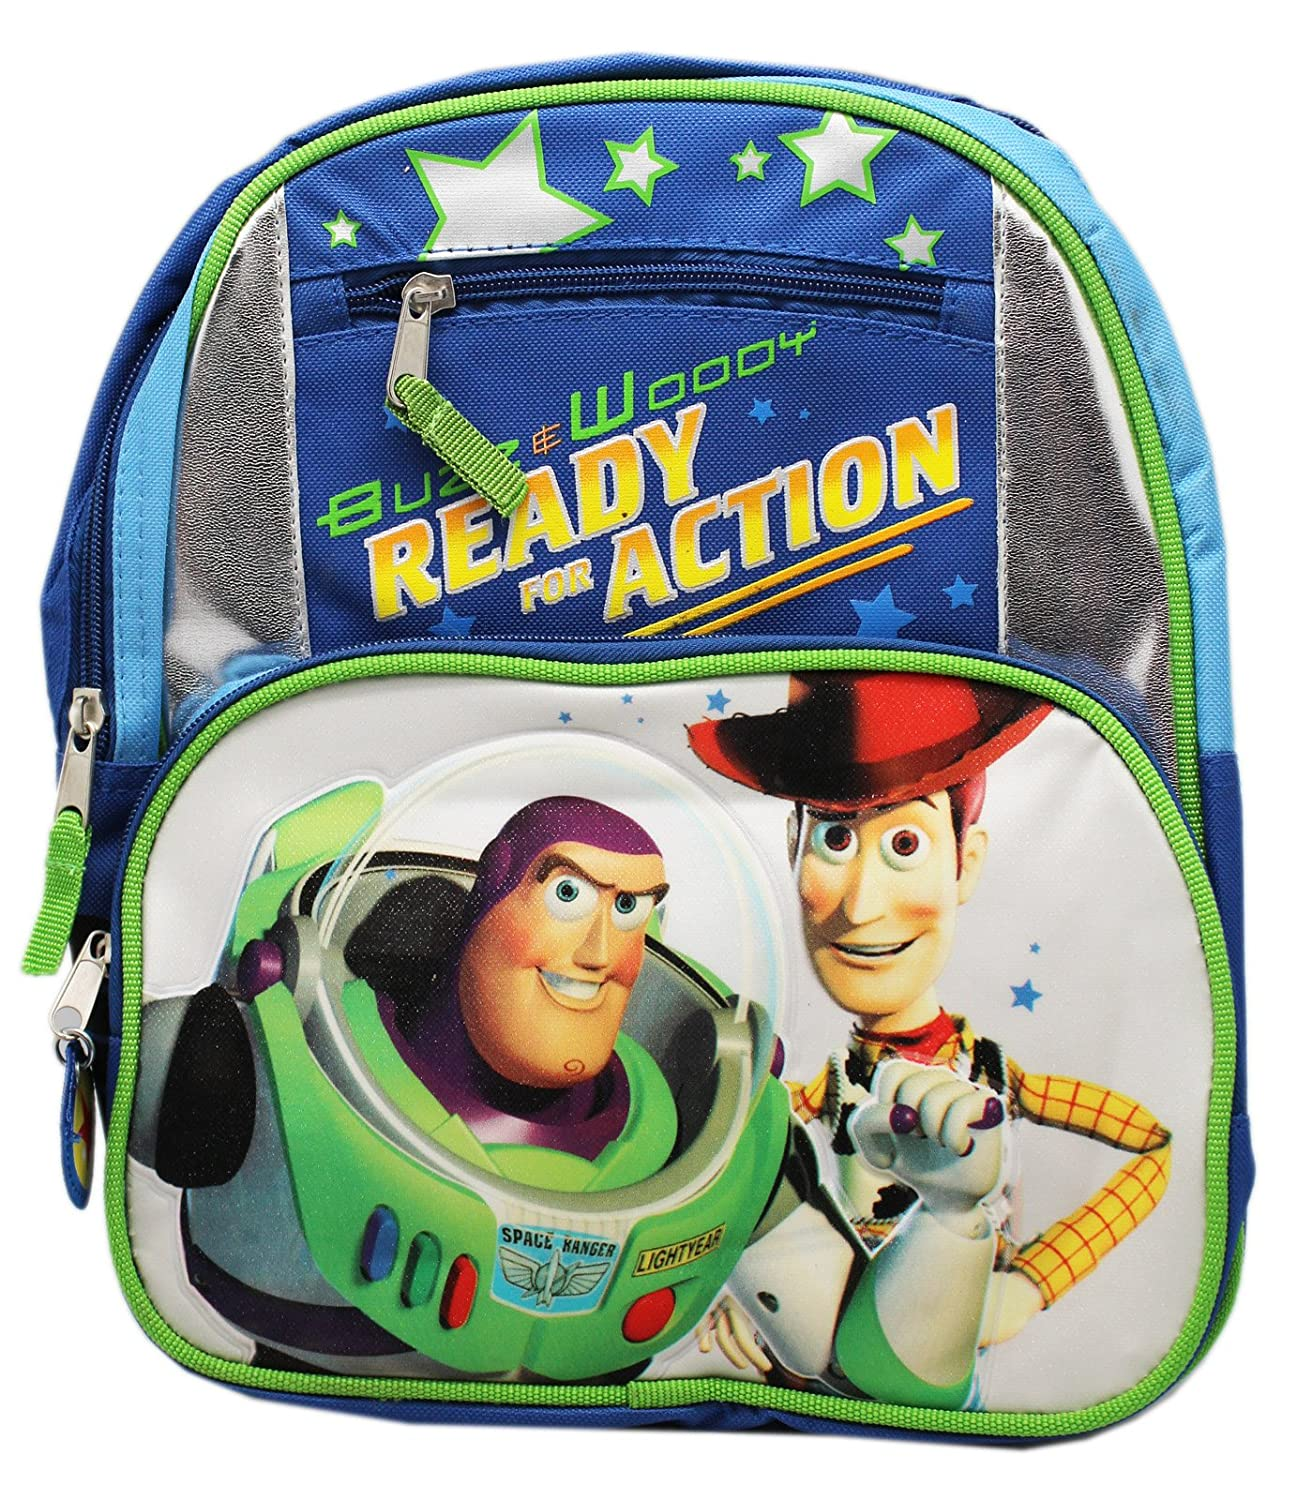 Disney 's Toy Story Buzz and Woody Ready for Action Smallバックパック(12in) B07DJSF1BB